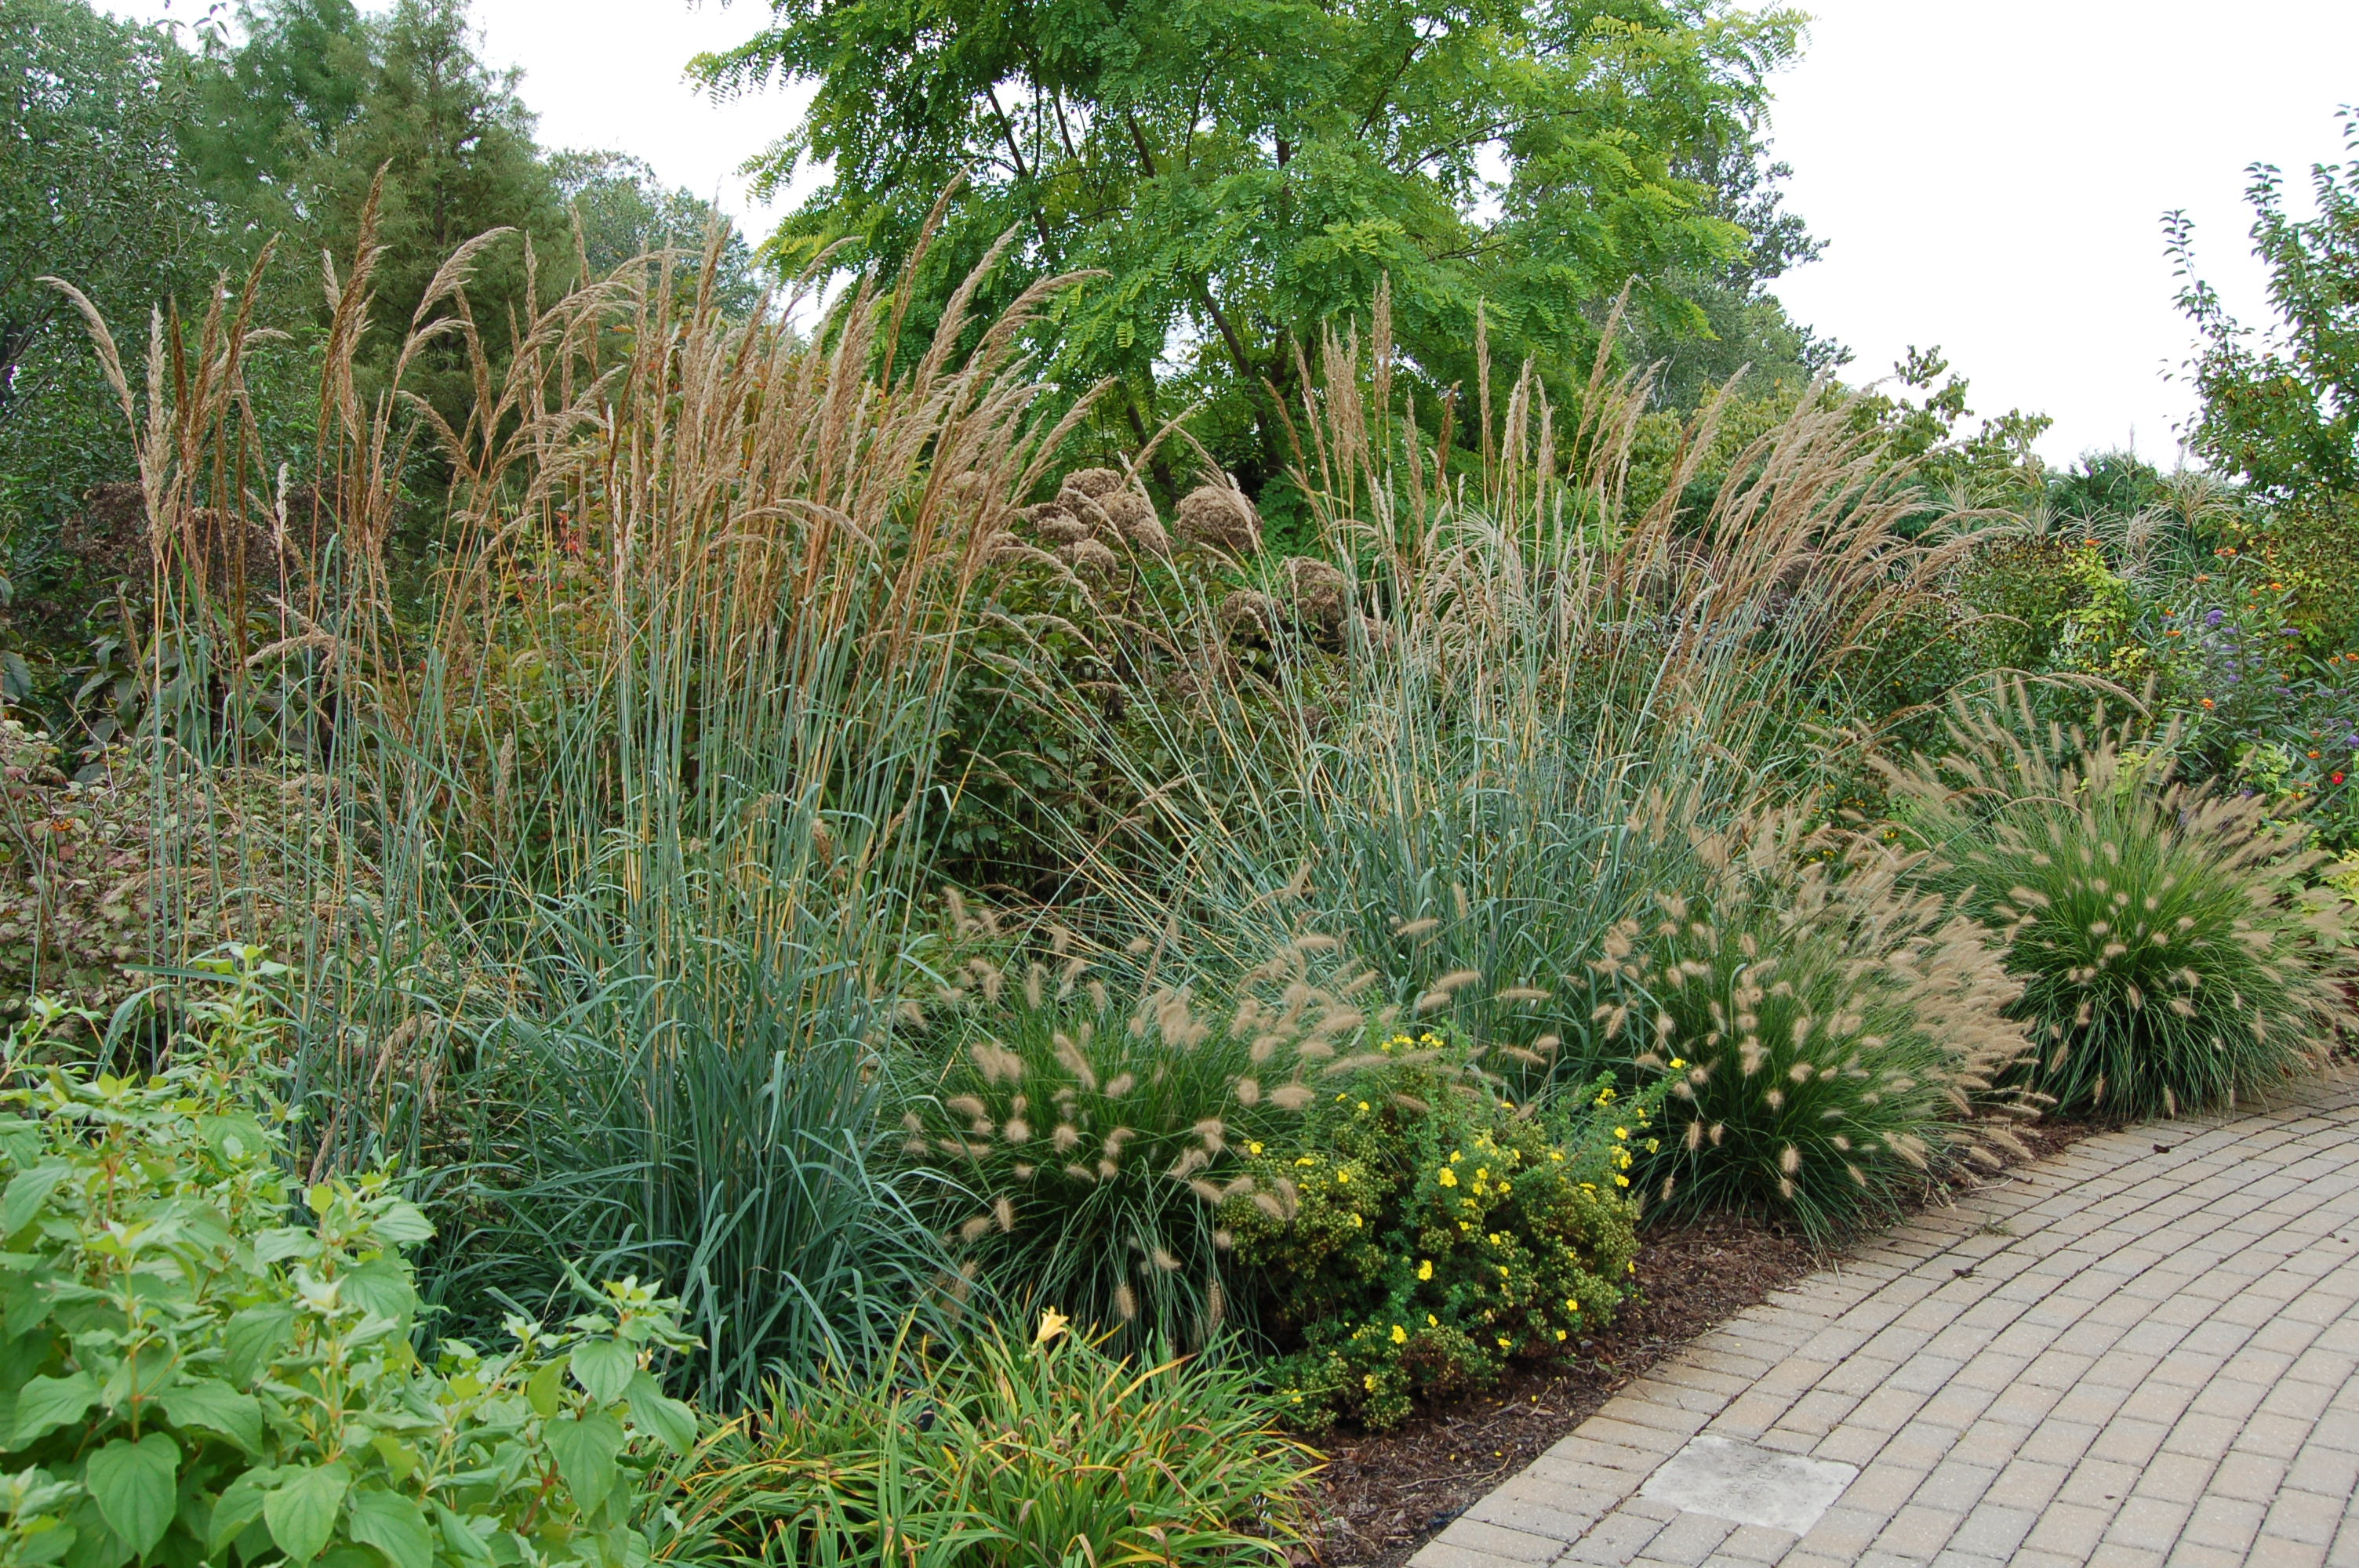 10 favorite ornamental grasses for midwest landscaping for Ornamental grass bed design